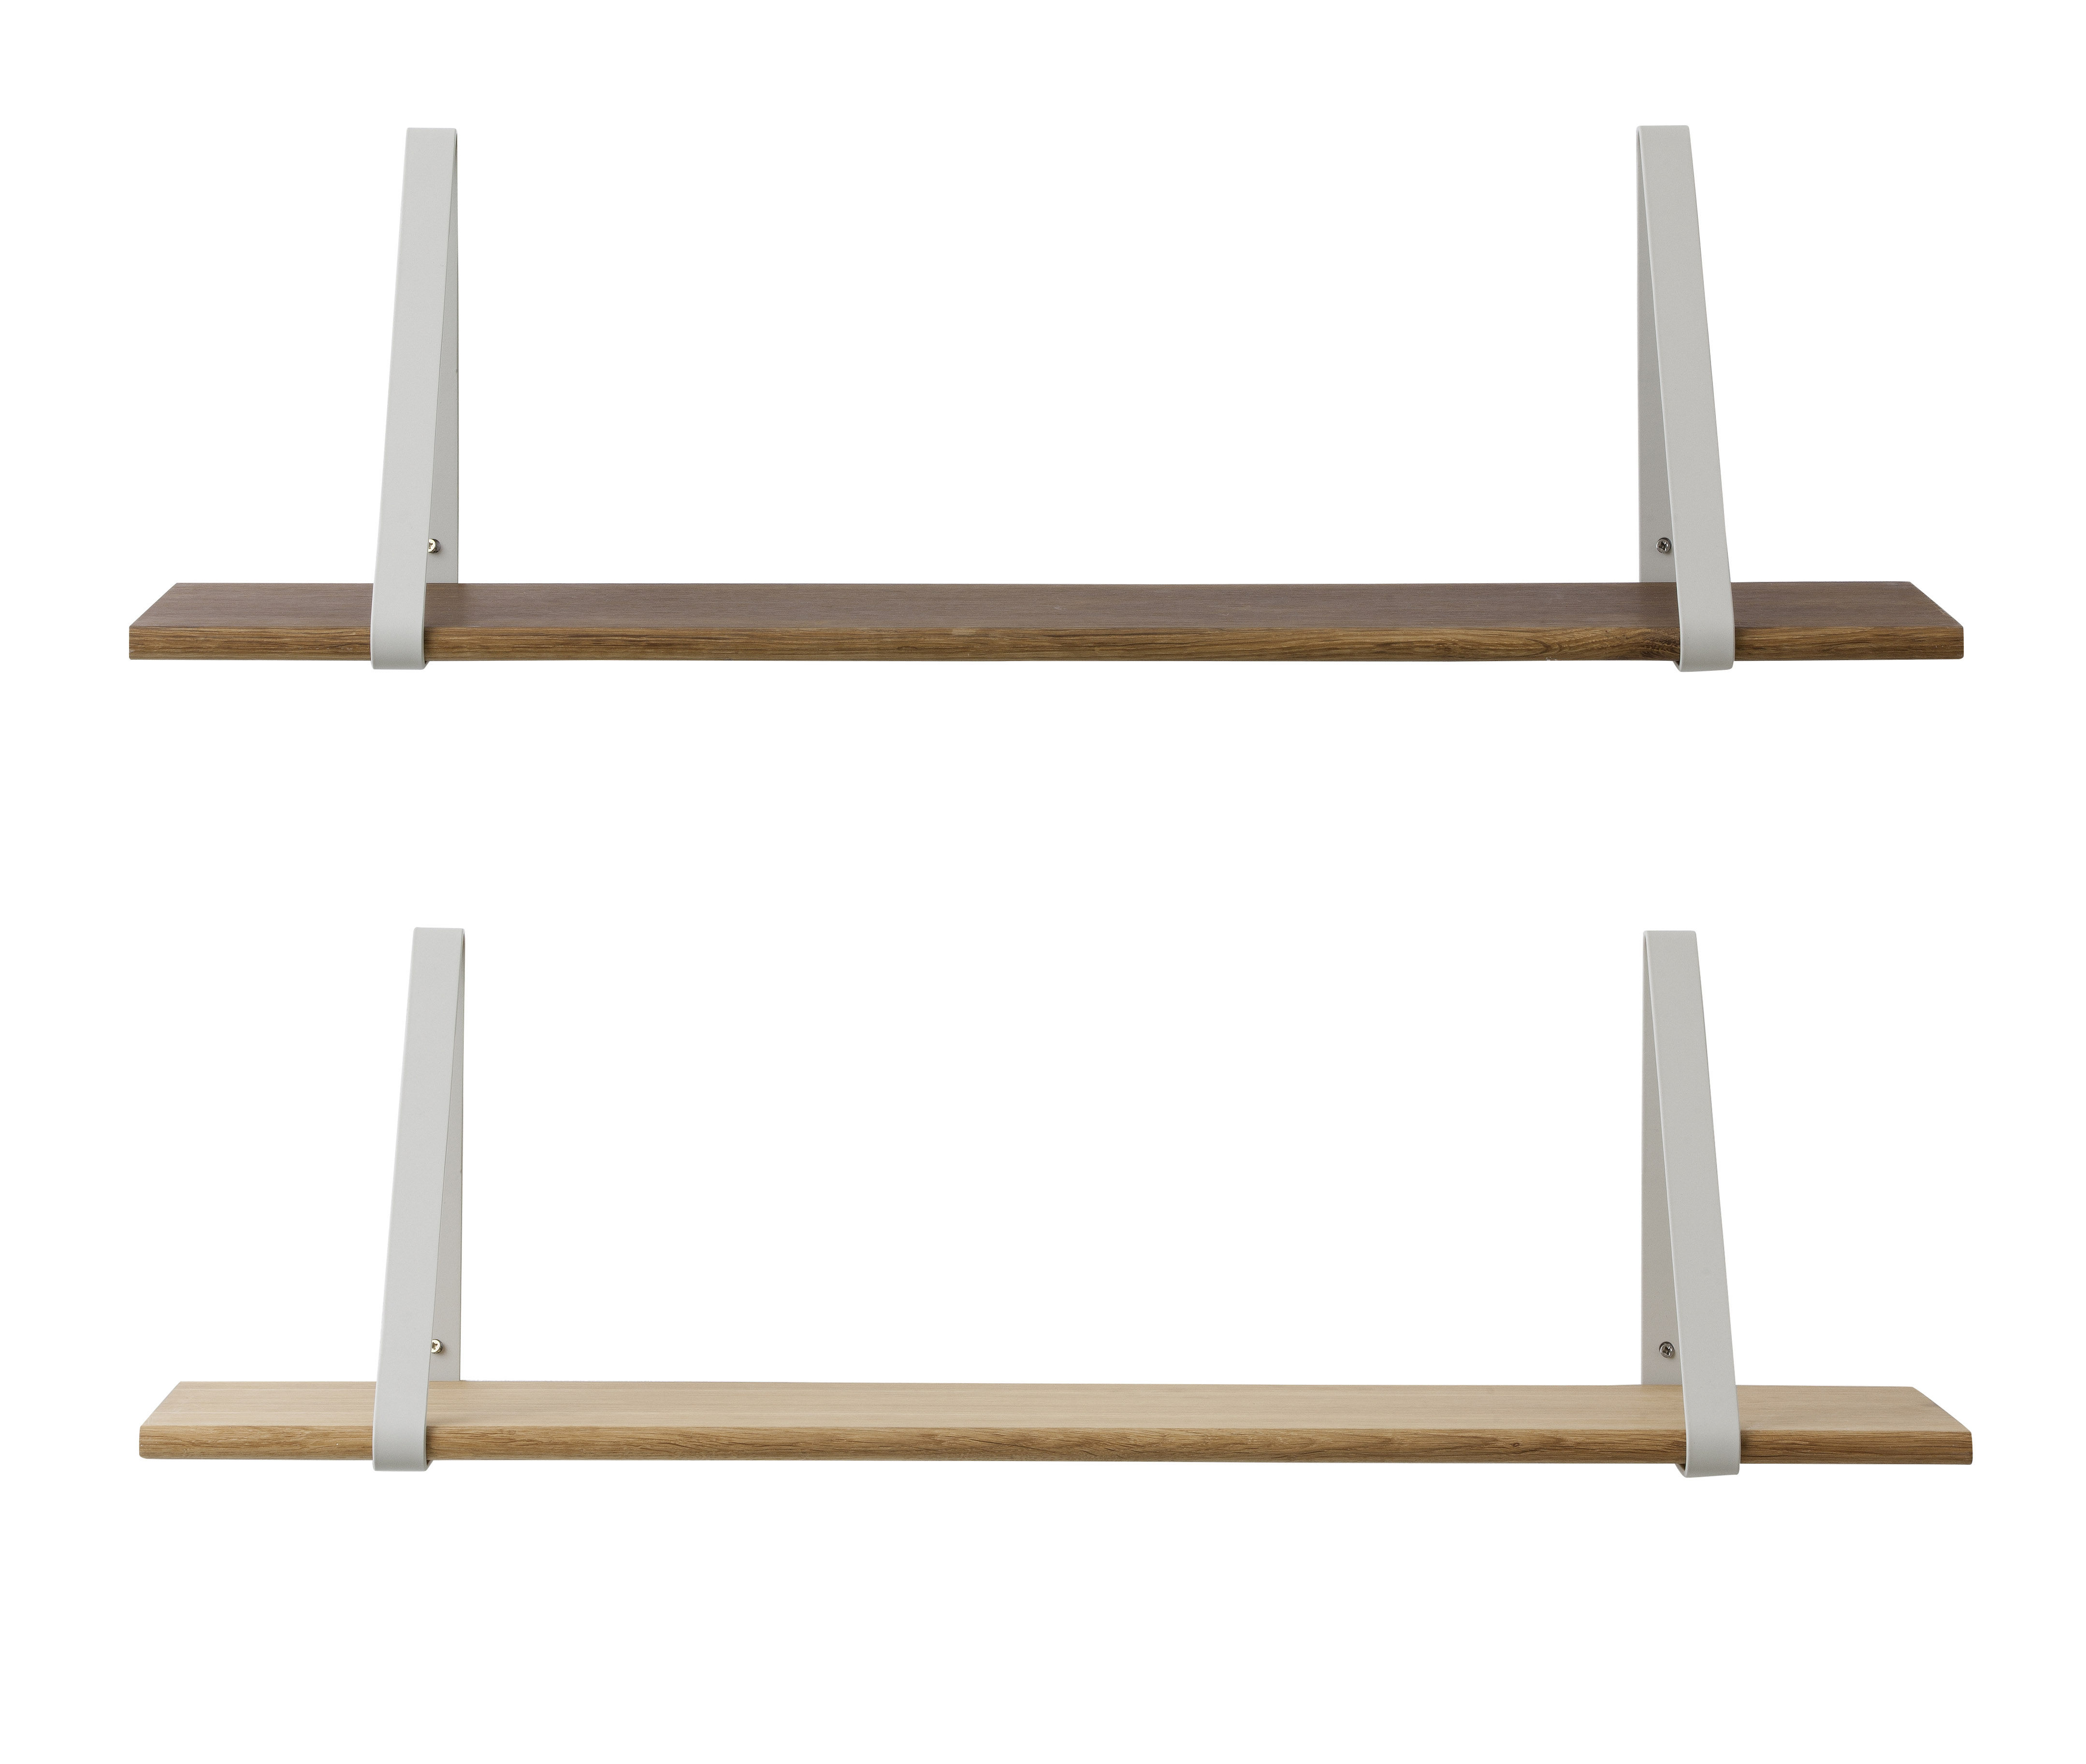 ZoomSet of 2 shelf brackets   For The Shelf Grey by Ferm Living. Ferm Living Shelf Brackets. Home Design Ideas